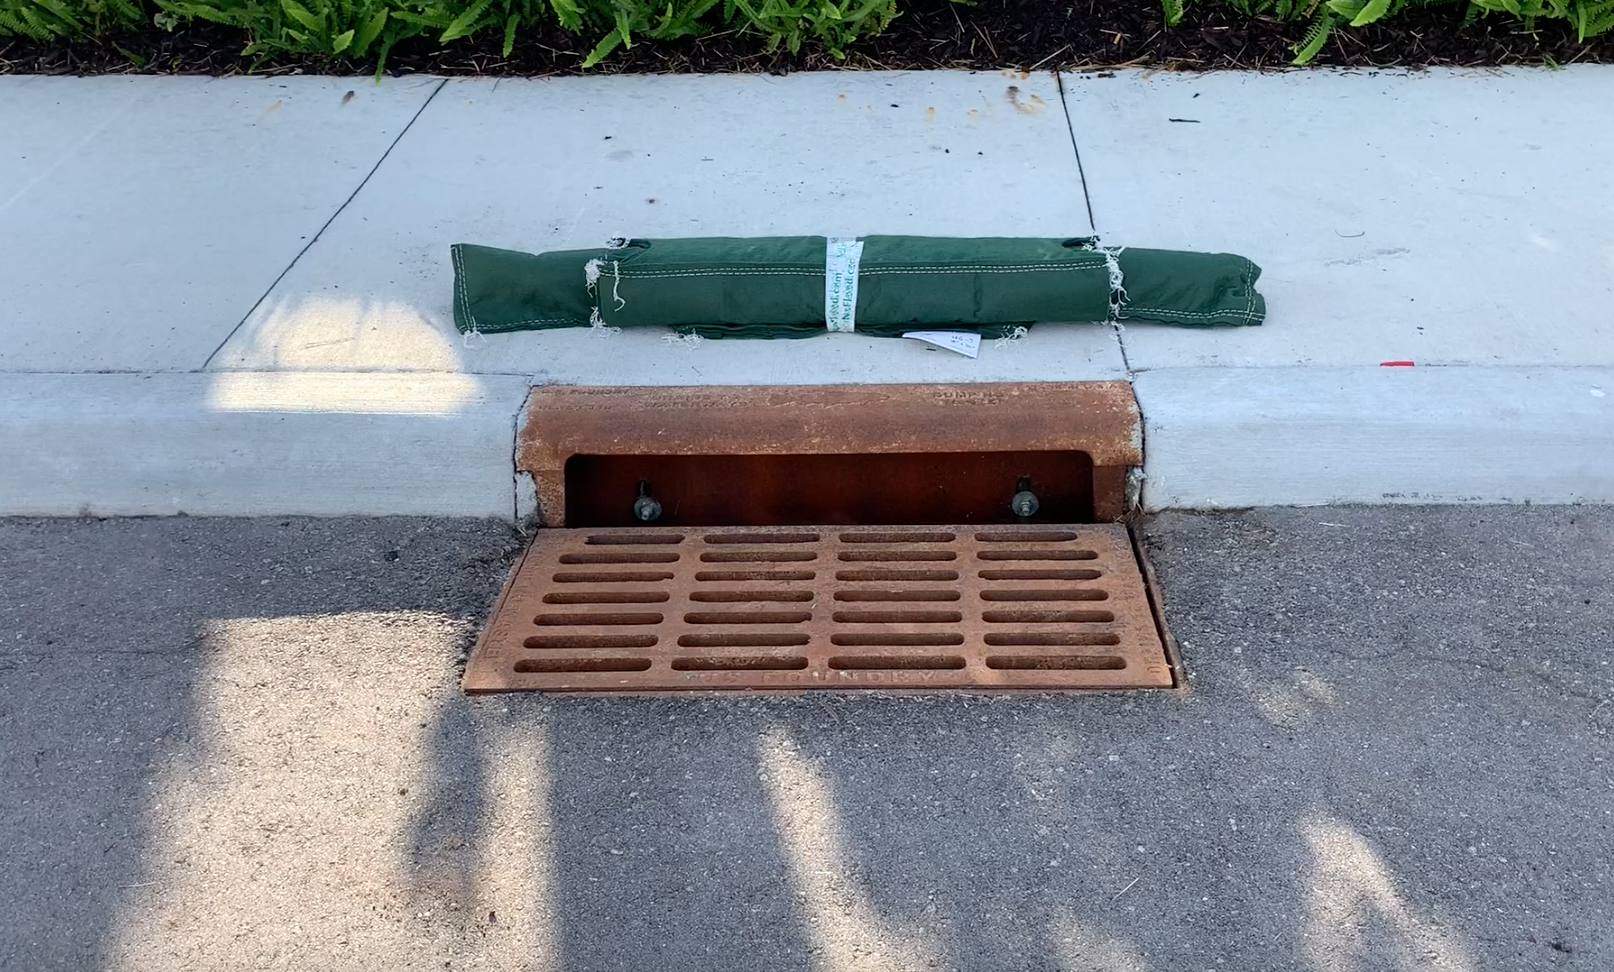 """18""""x36"""" Under-Grate Filter, with attached Curb Blocker"""